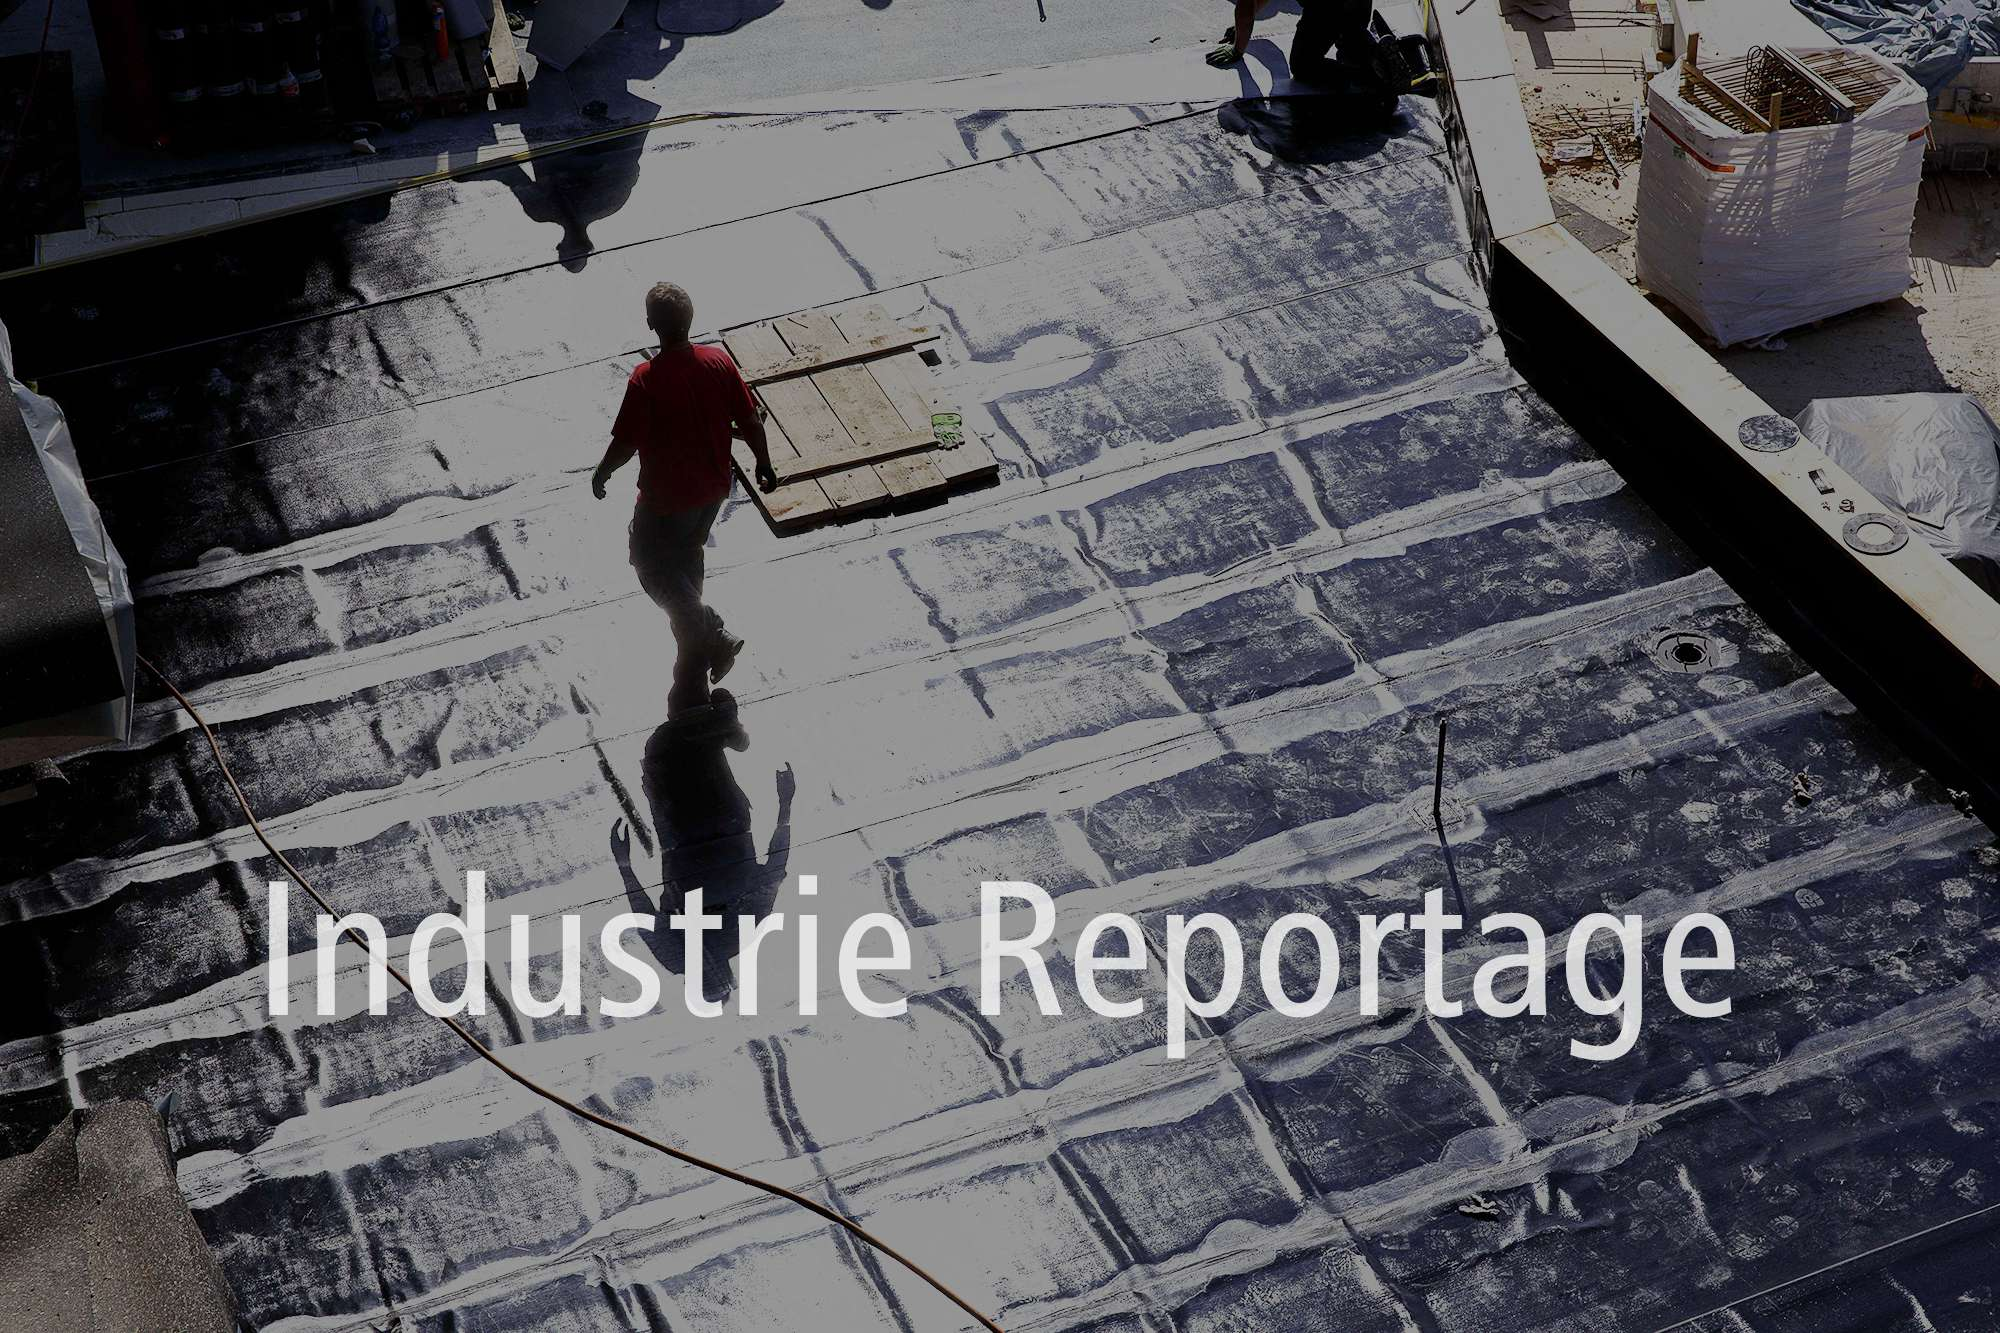 Industrie-Reportage